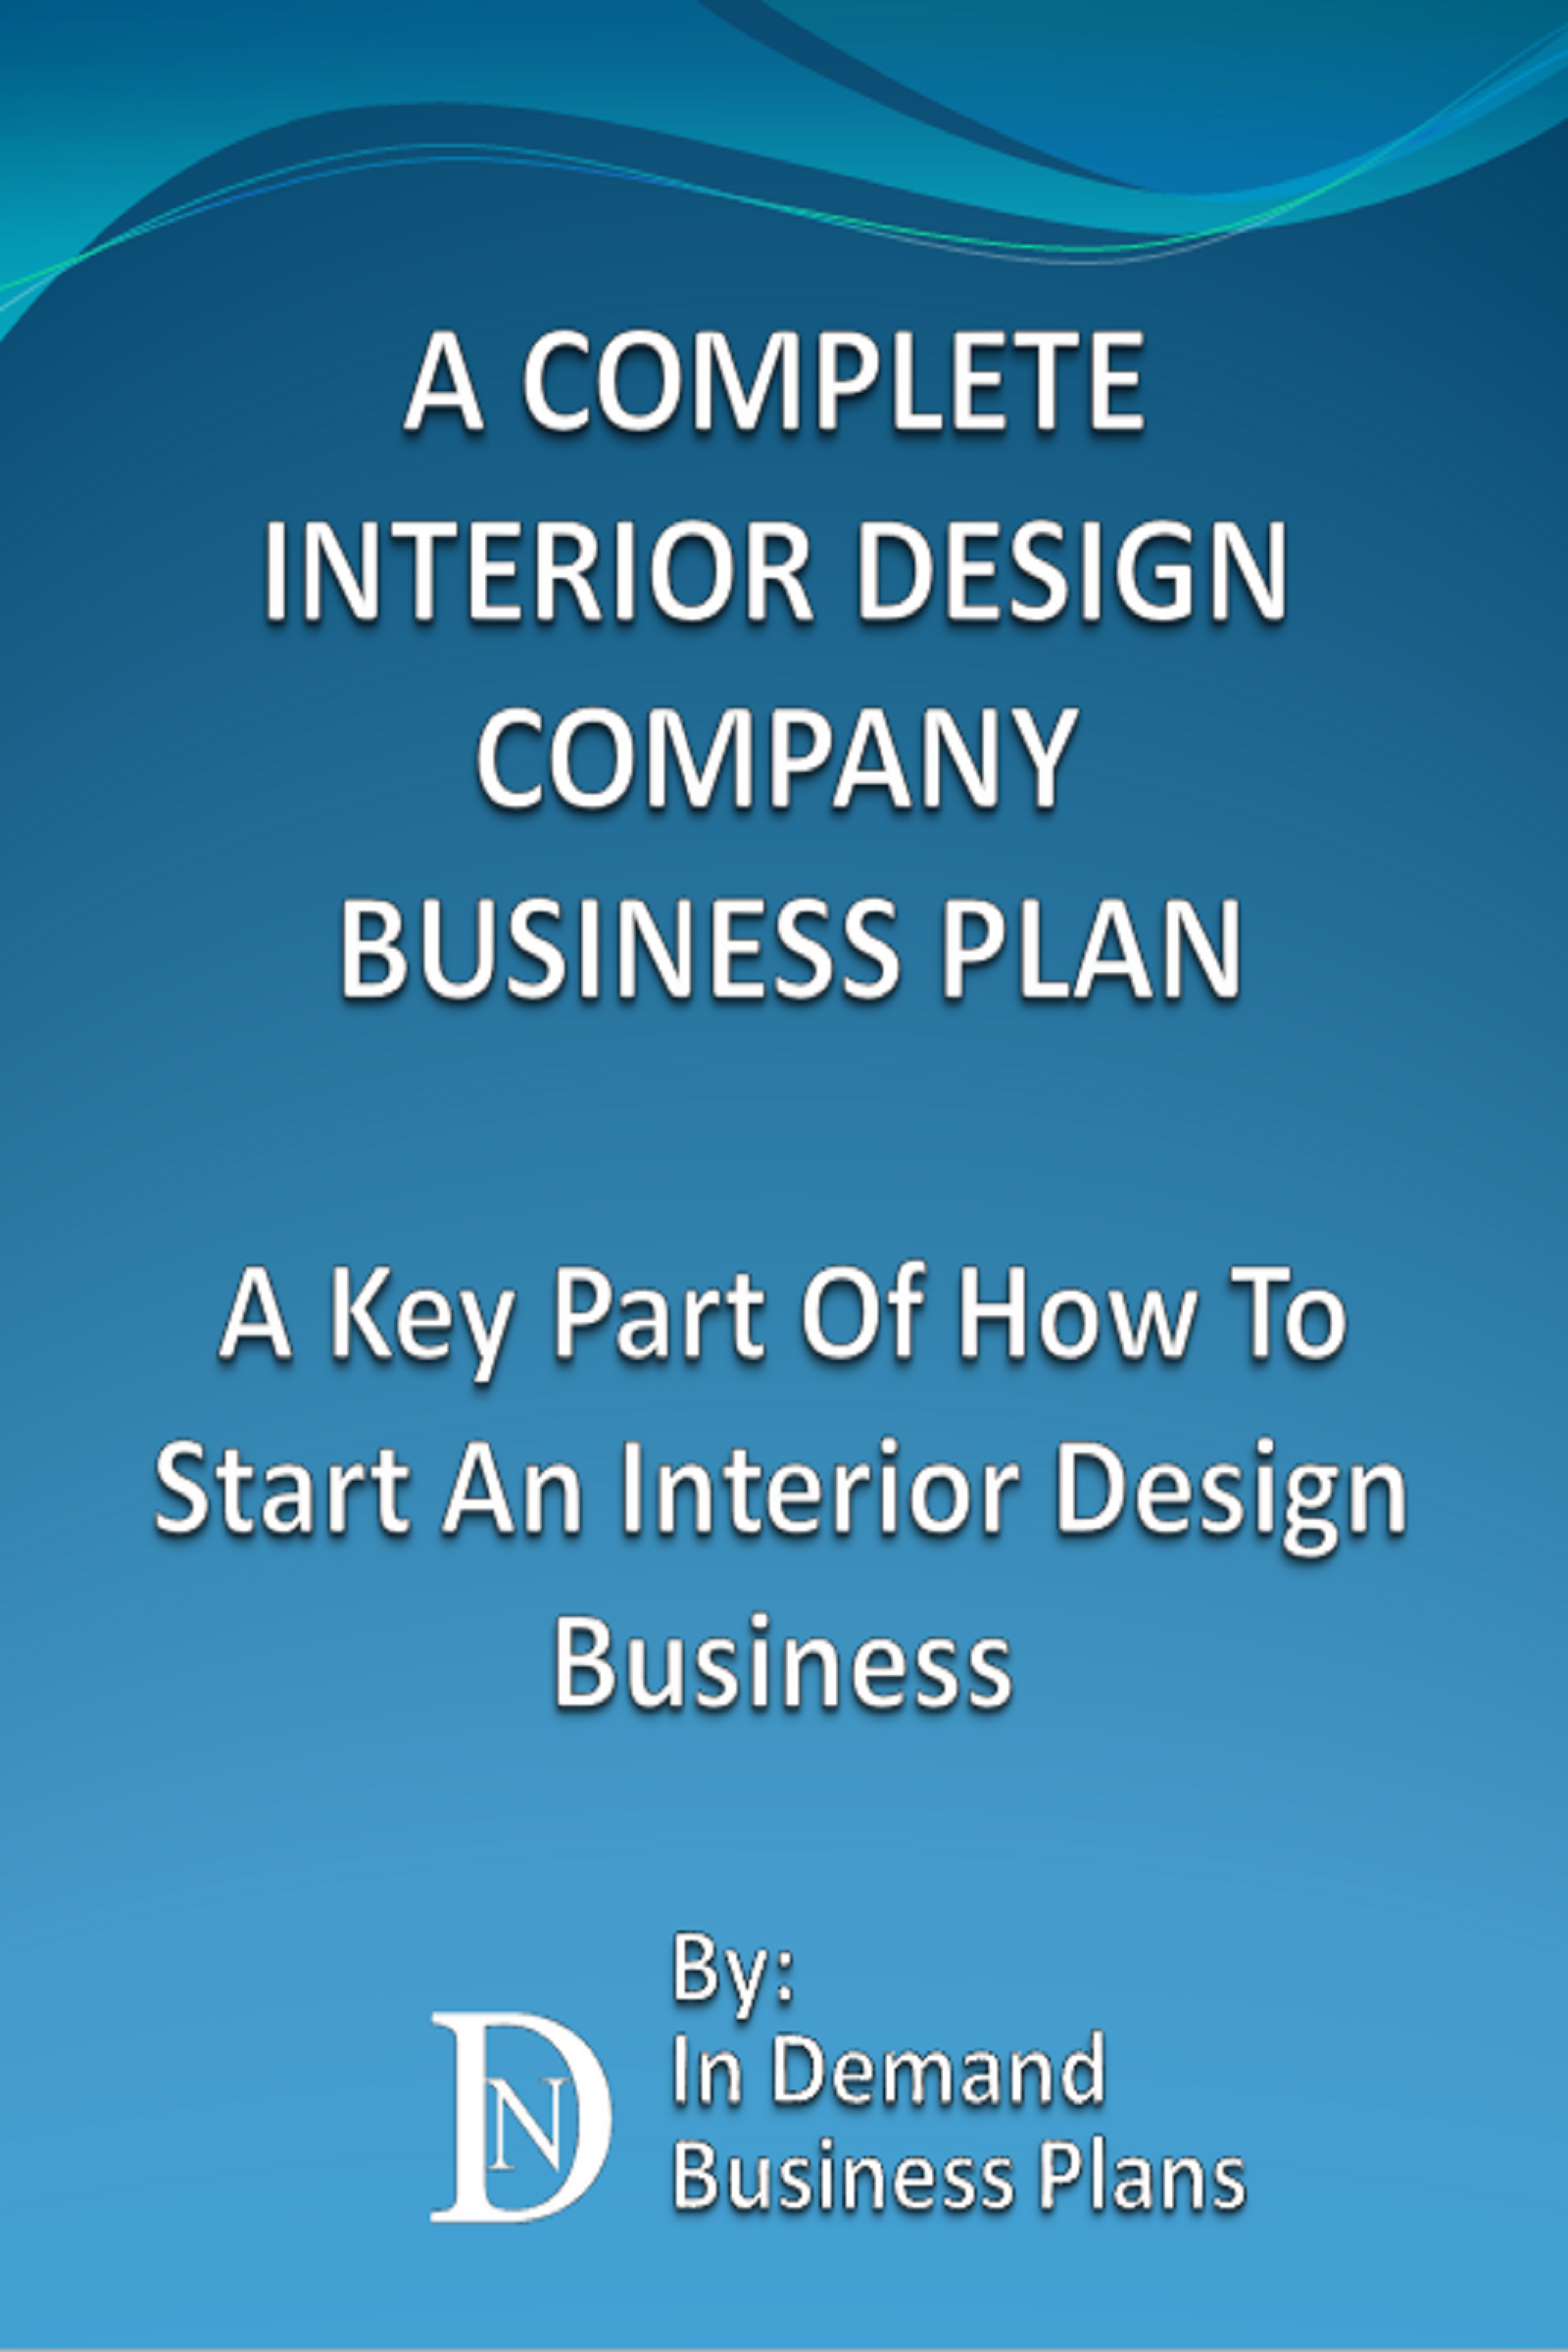 A Complete Interior Design Company Business Plan Key Part Of How To Start An